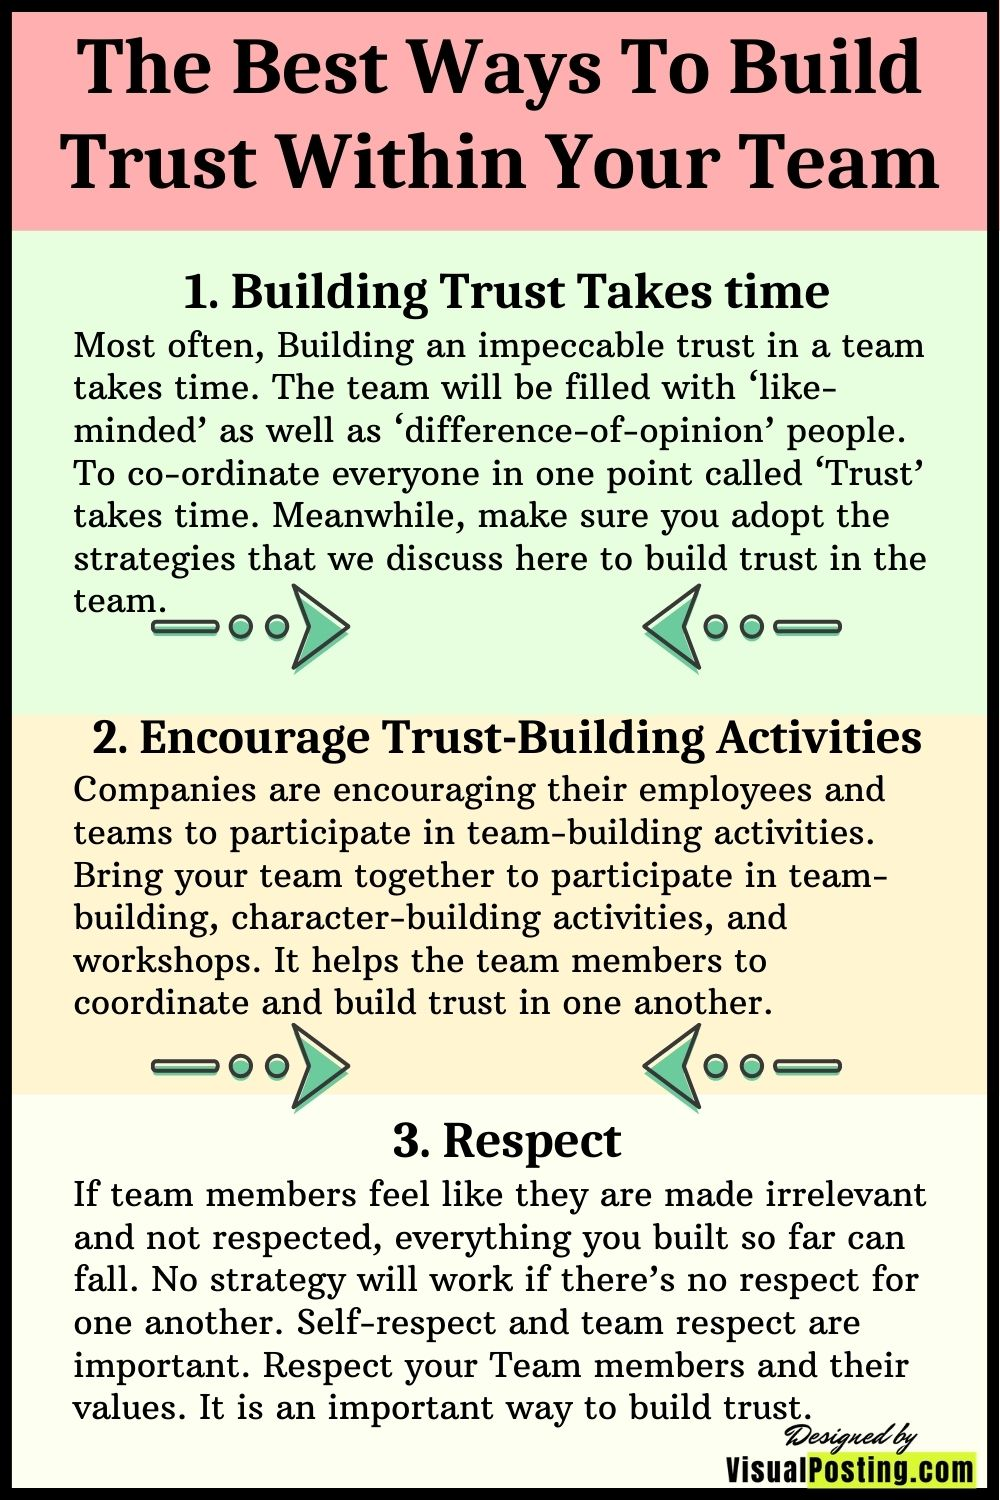 The Best Ways To Build Trust Within Your Team.jpg